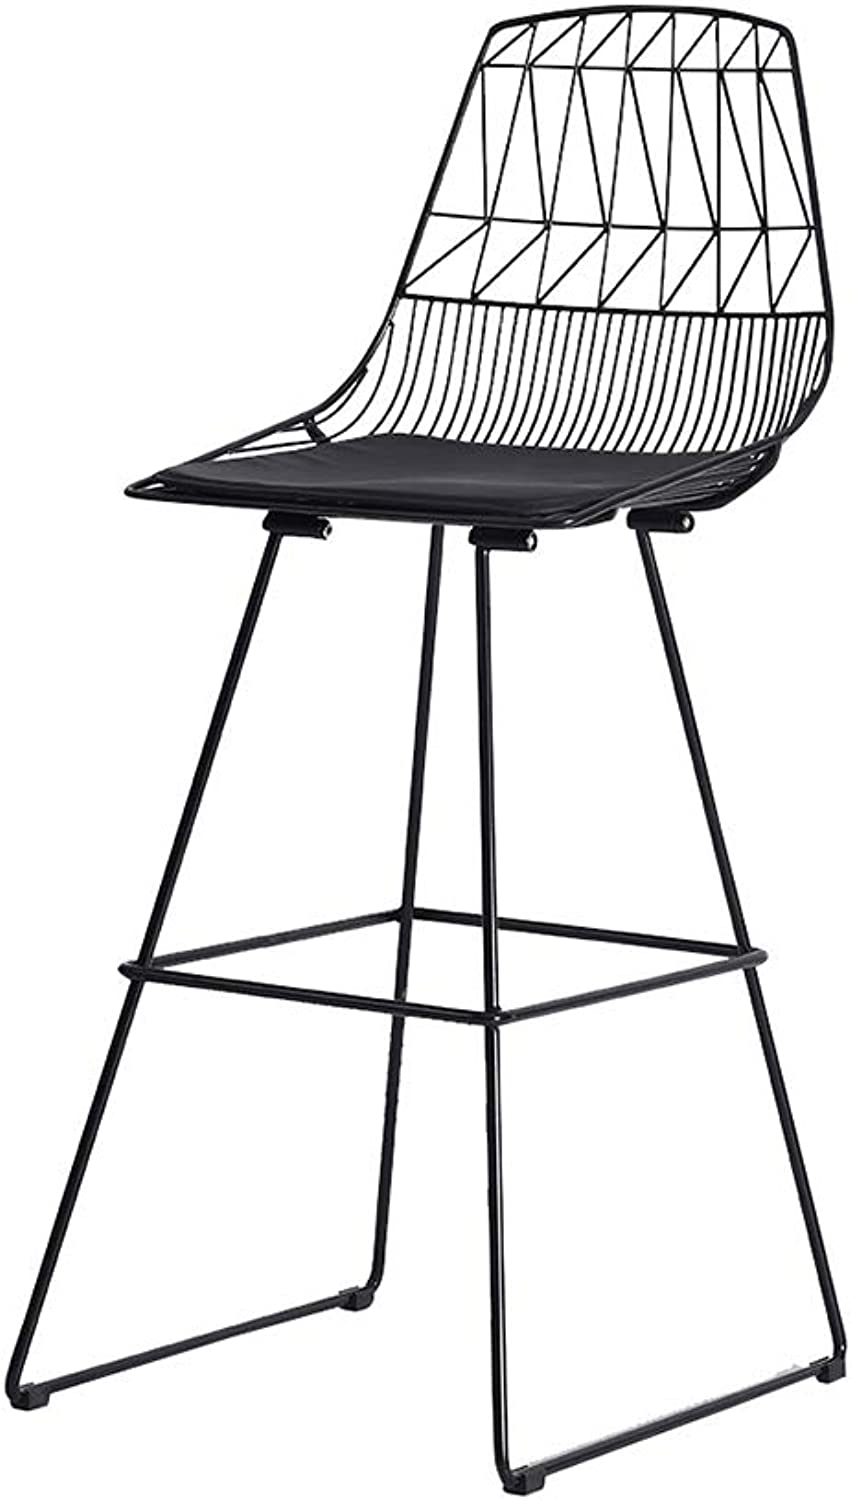 Bar Stool high Stool Wrought Iron PU Cushion Black, White   30 inches high Durable (color   Black)